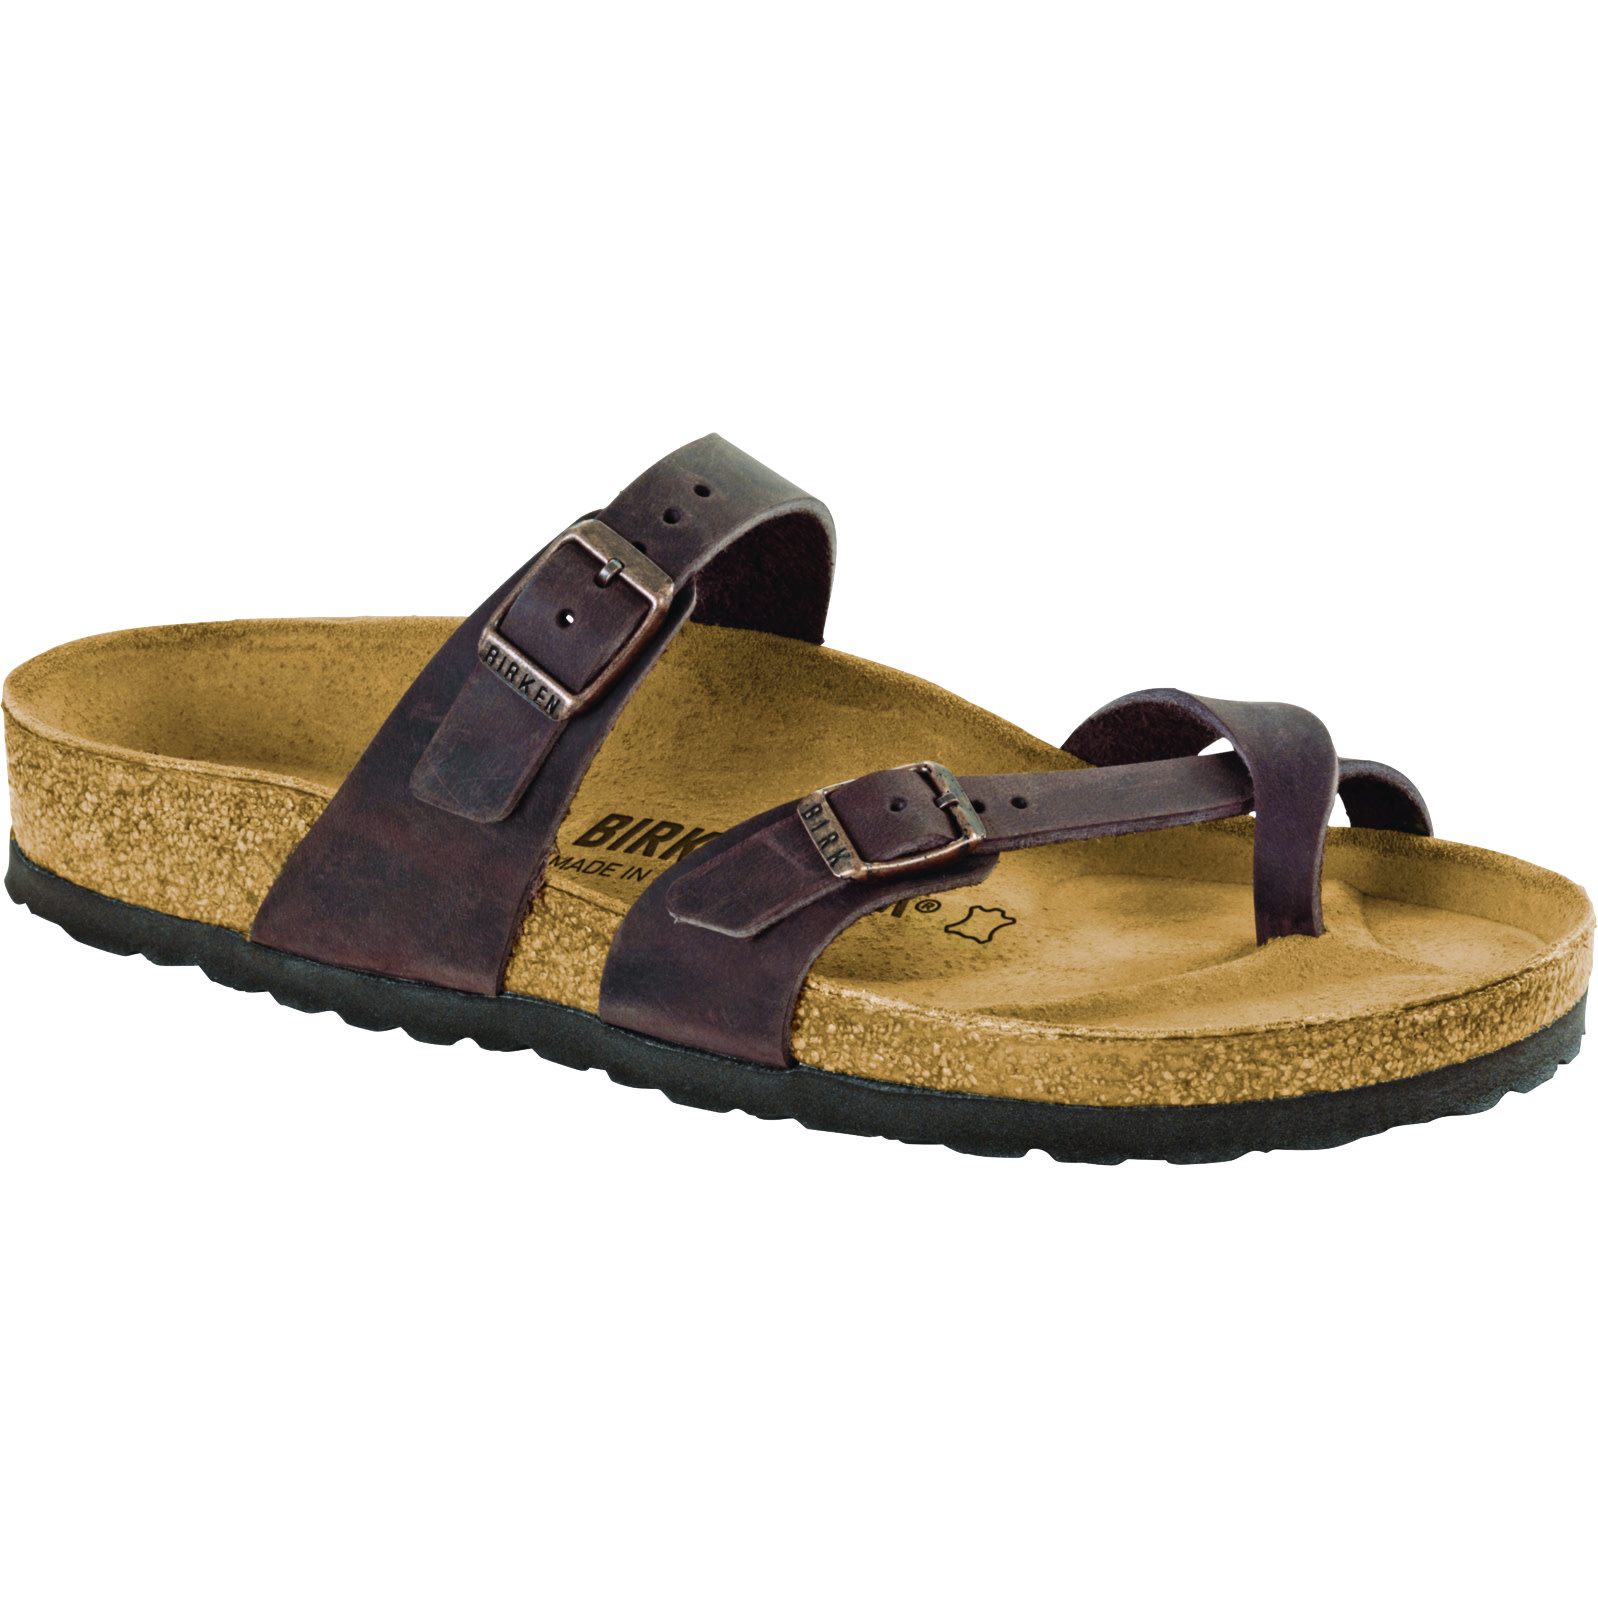 Birkenstock Birkenstock Mayari Oiled Leather (Women - Regular) - Habana